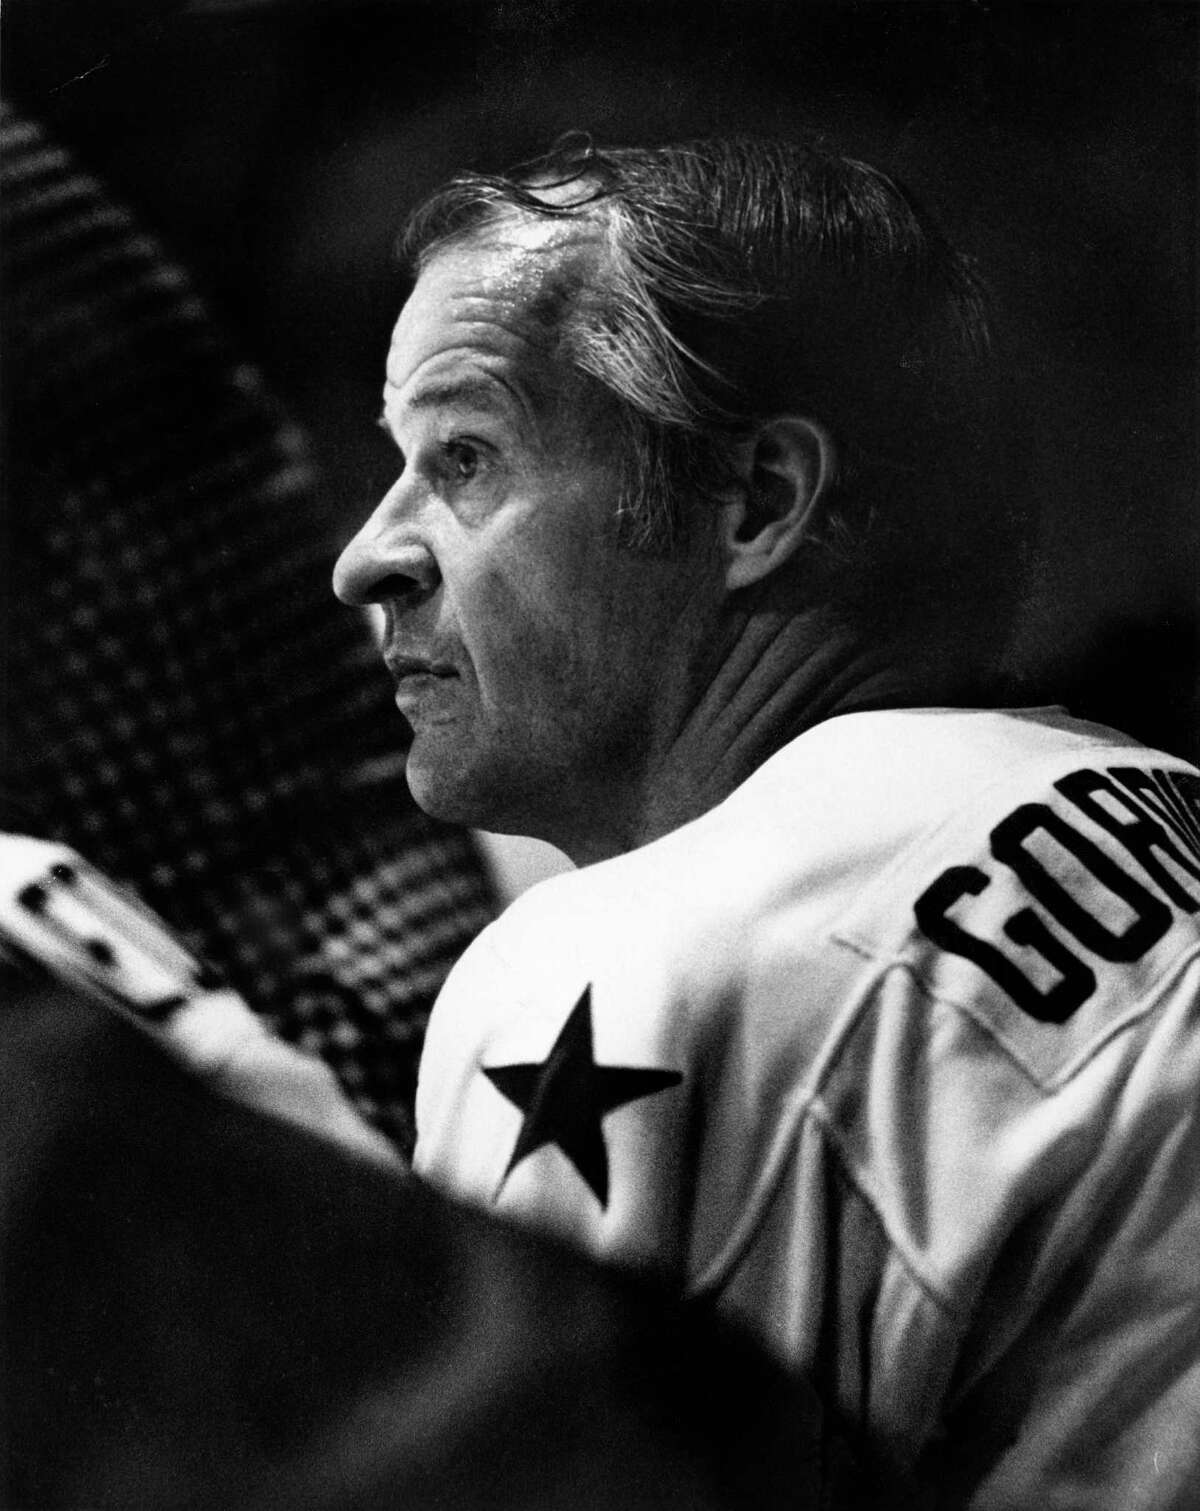 Gordie Howe takes a breather on the bench in a playoff game against the San Diego Mariners on May 1, 1975. The Aeros defeated the Mariners in overtime.